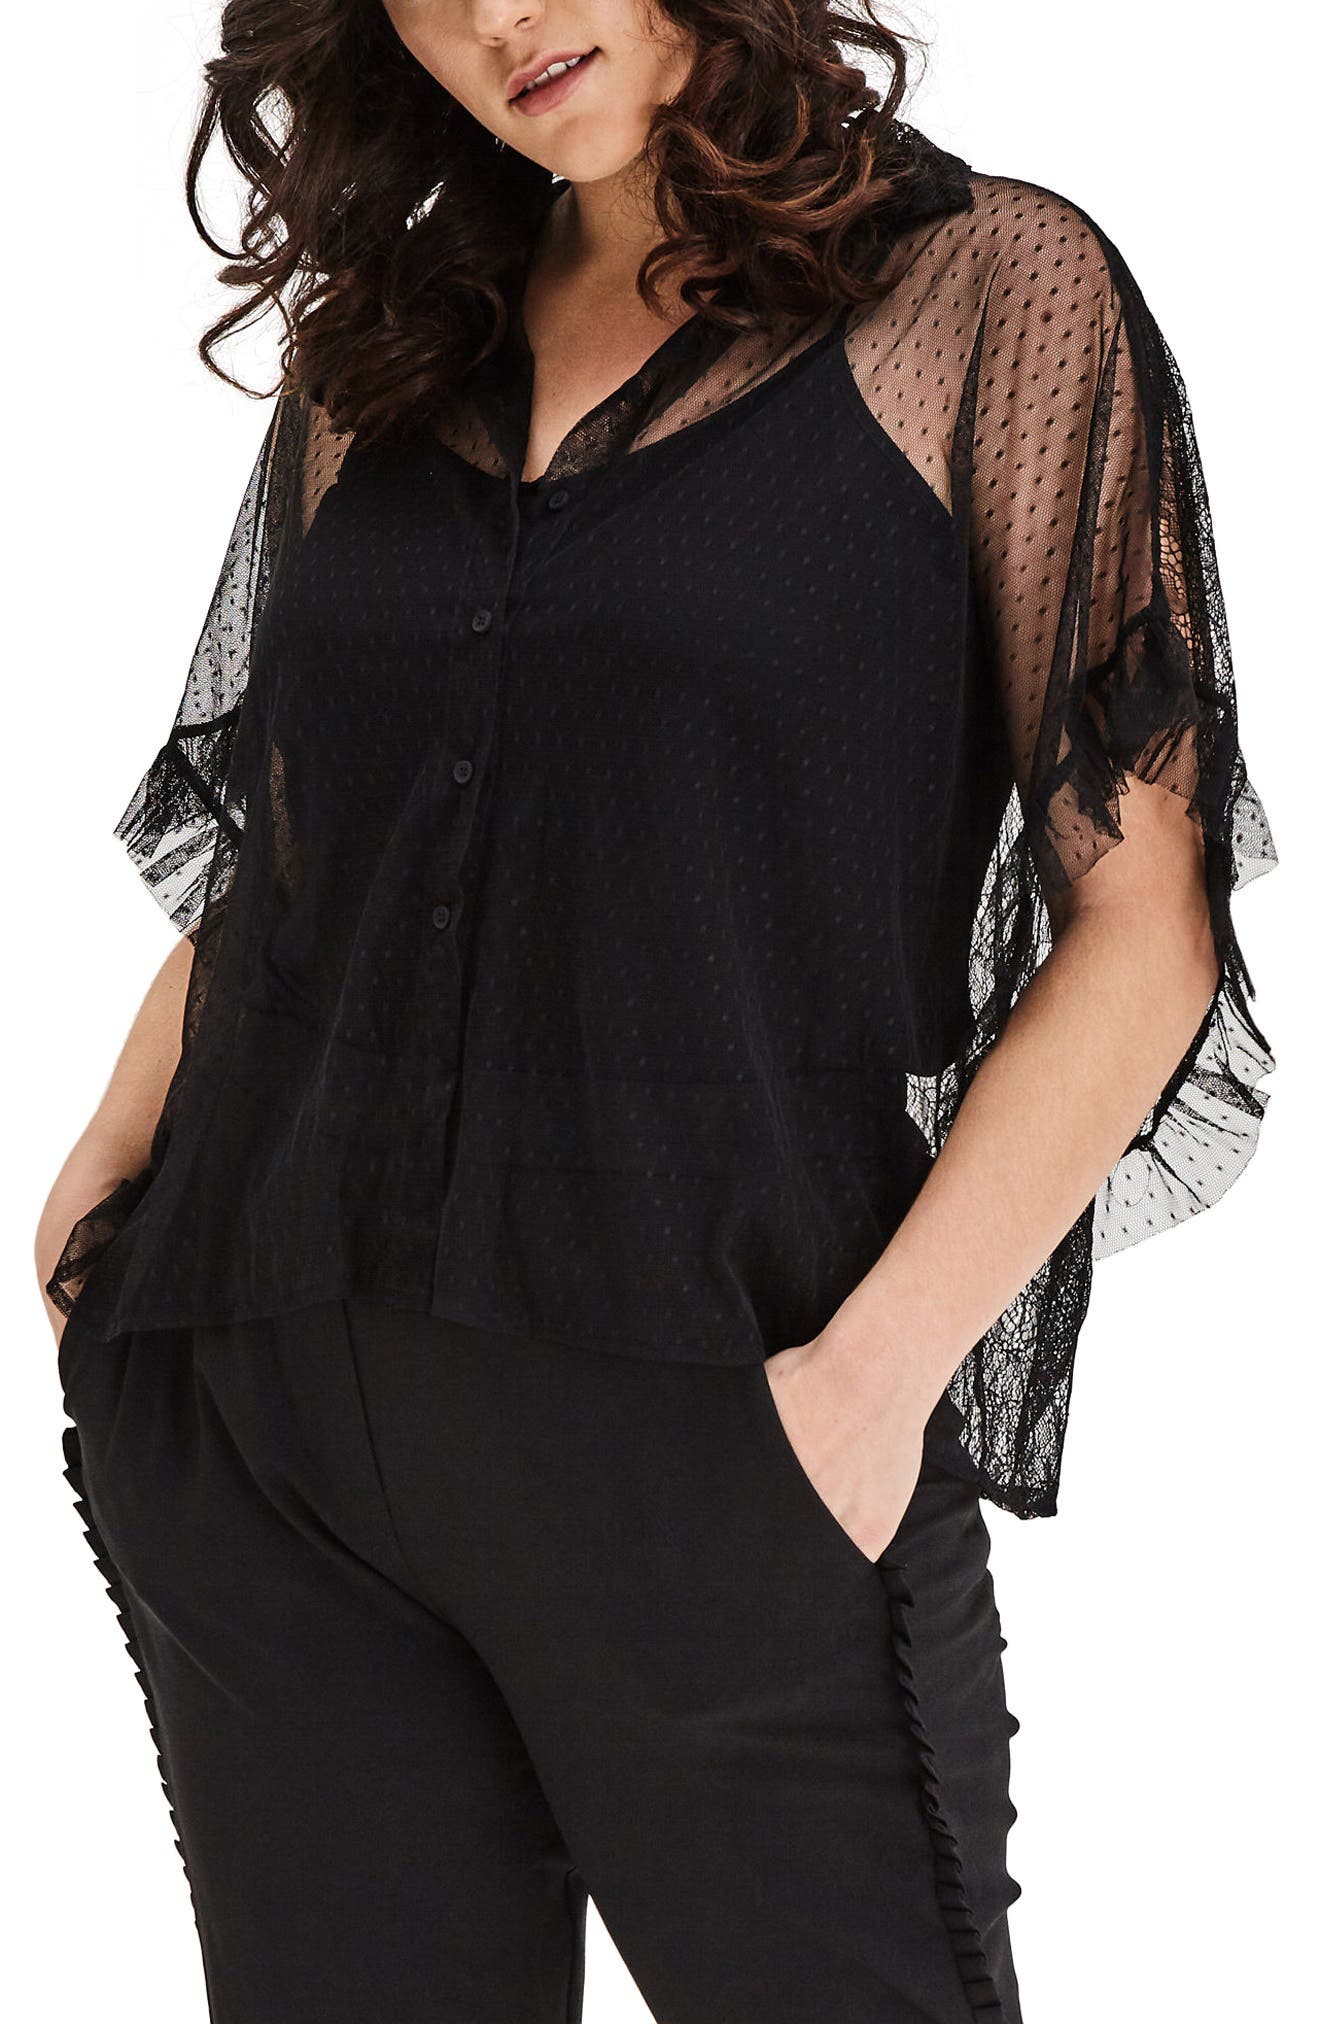 Alternate Image 1 Selected - ELVI Mixed Lace Shirt (Plus Size)